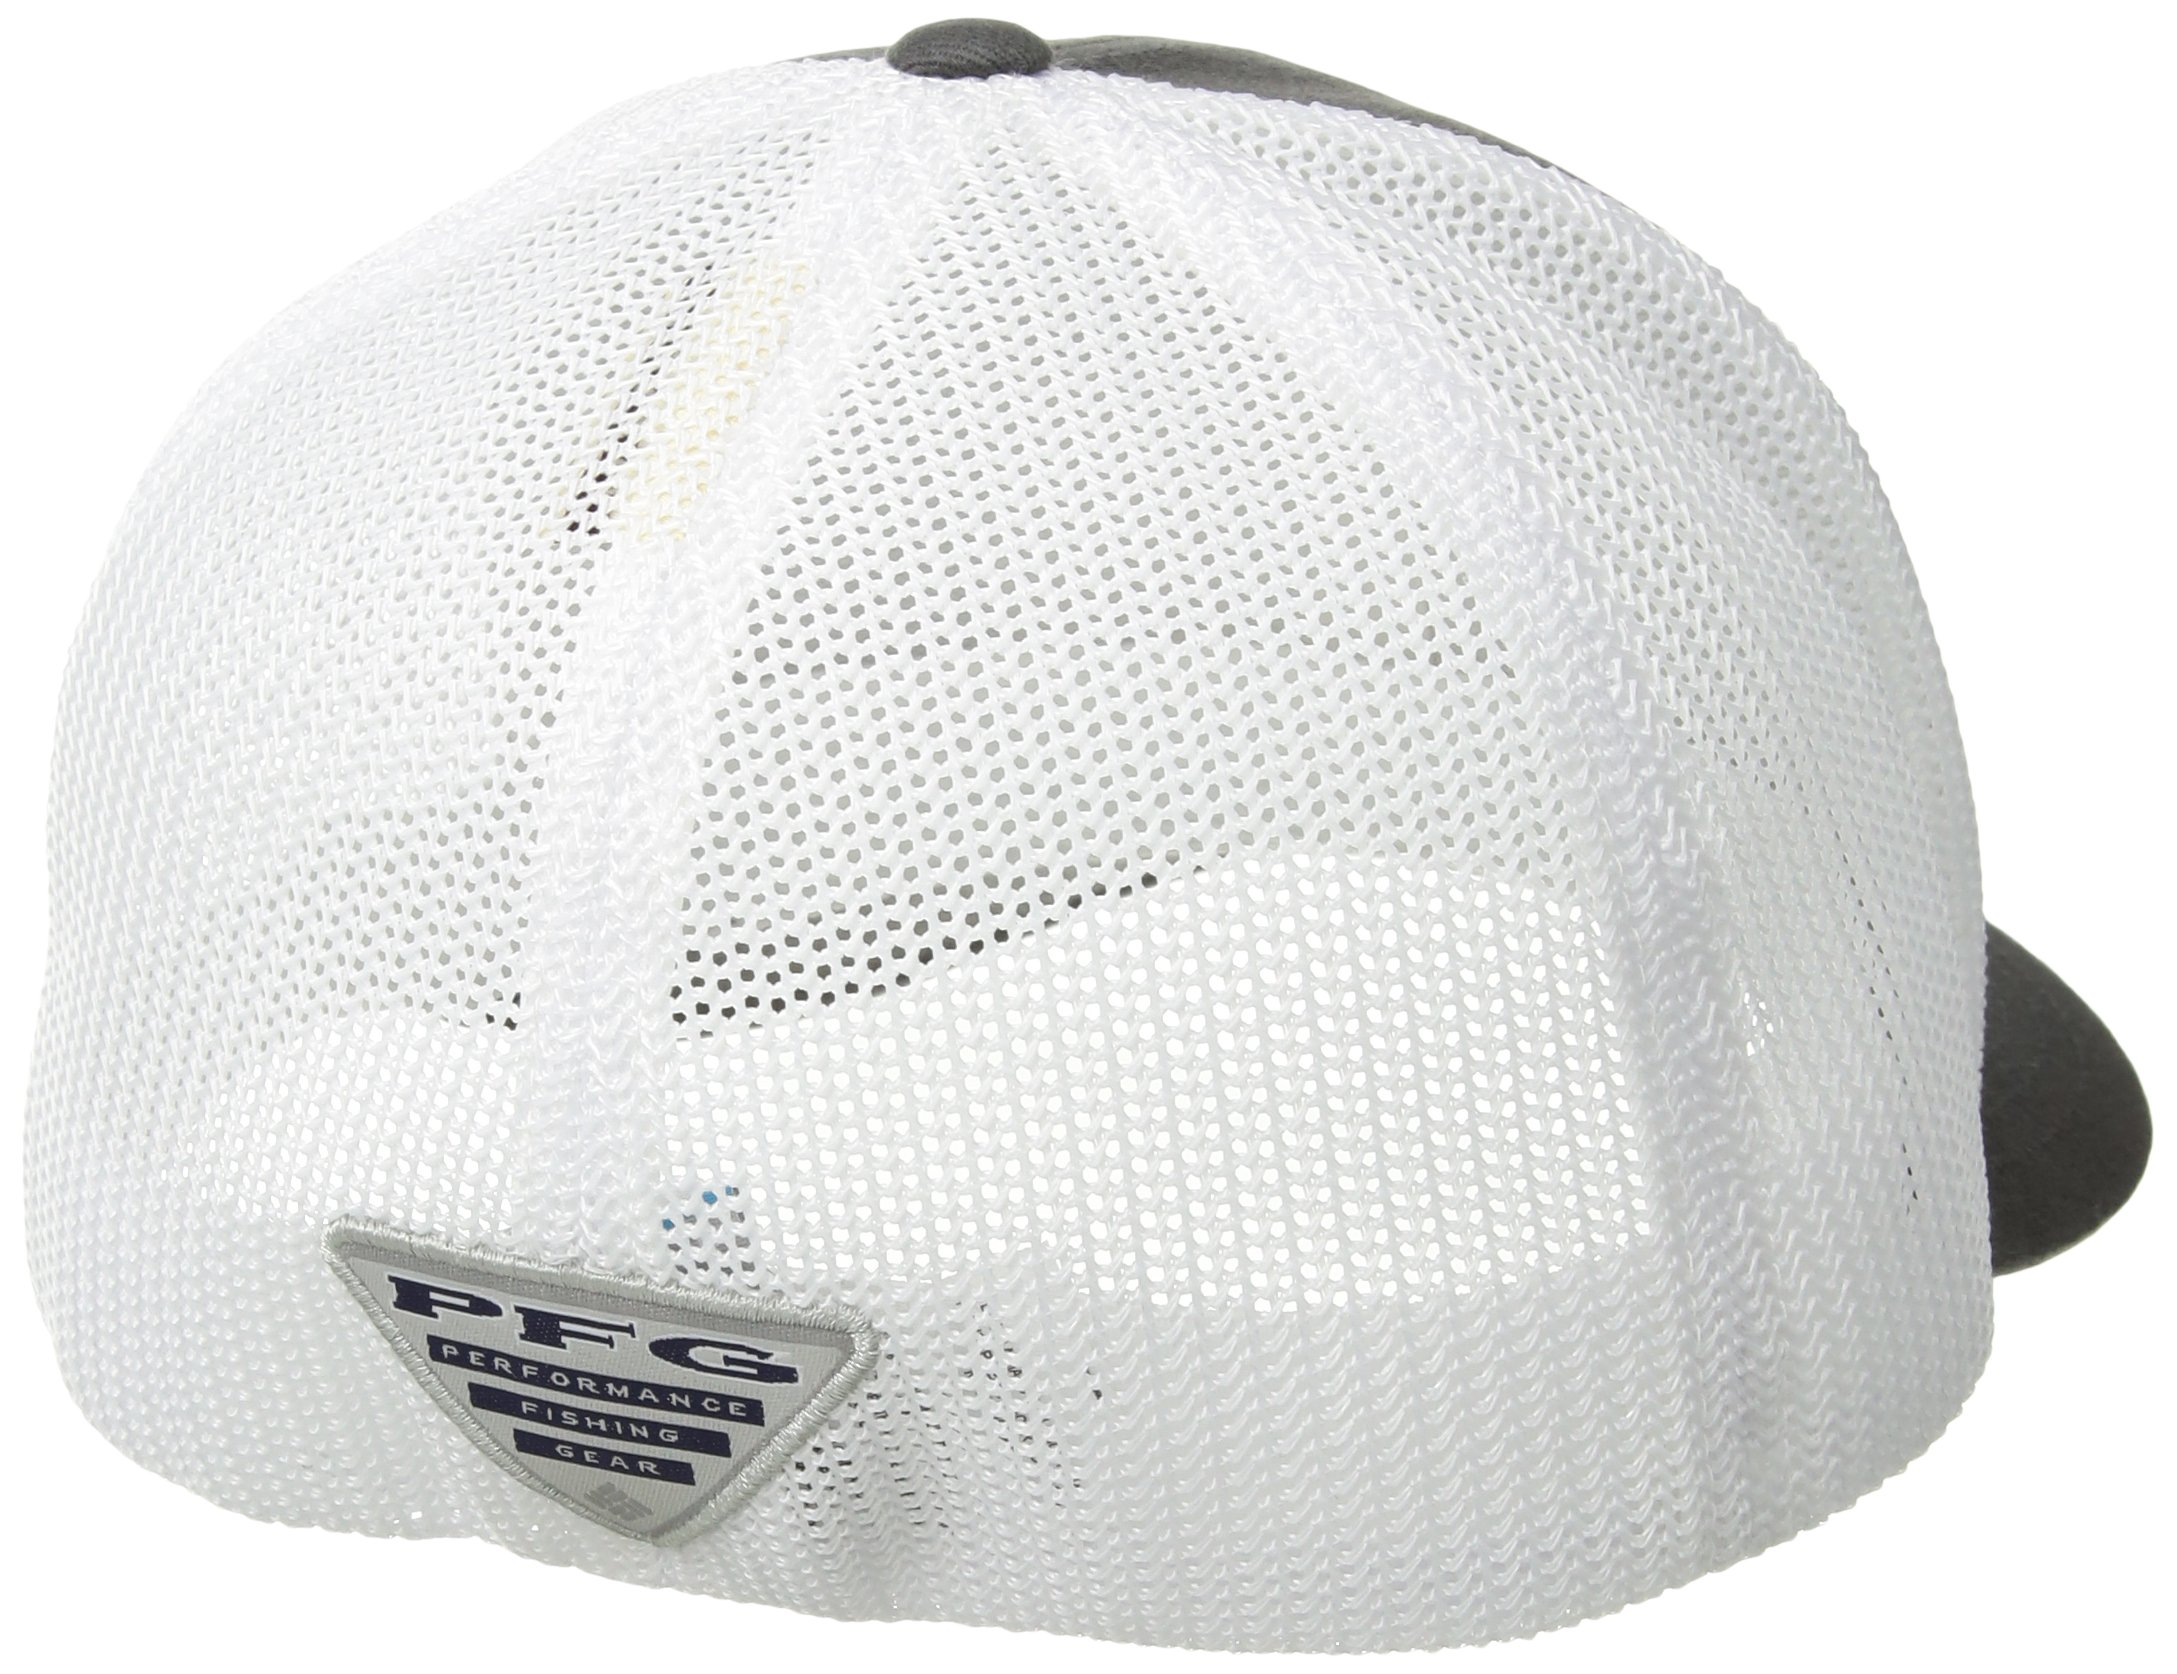 Columbia PFG Mesh Ball Cap, Grill Fish Trio, Large/X-Large by Columbia (Image #2)